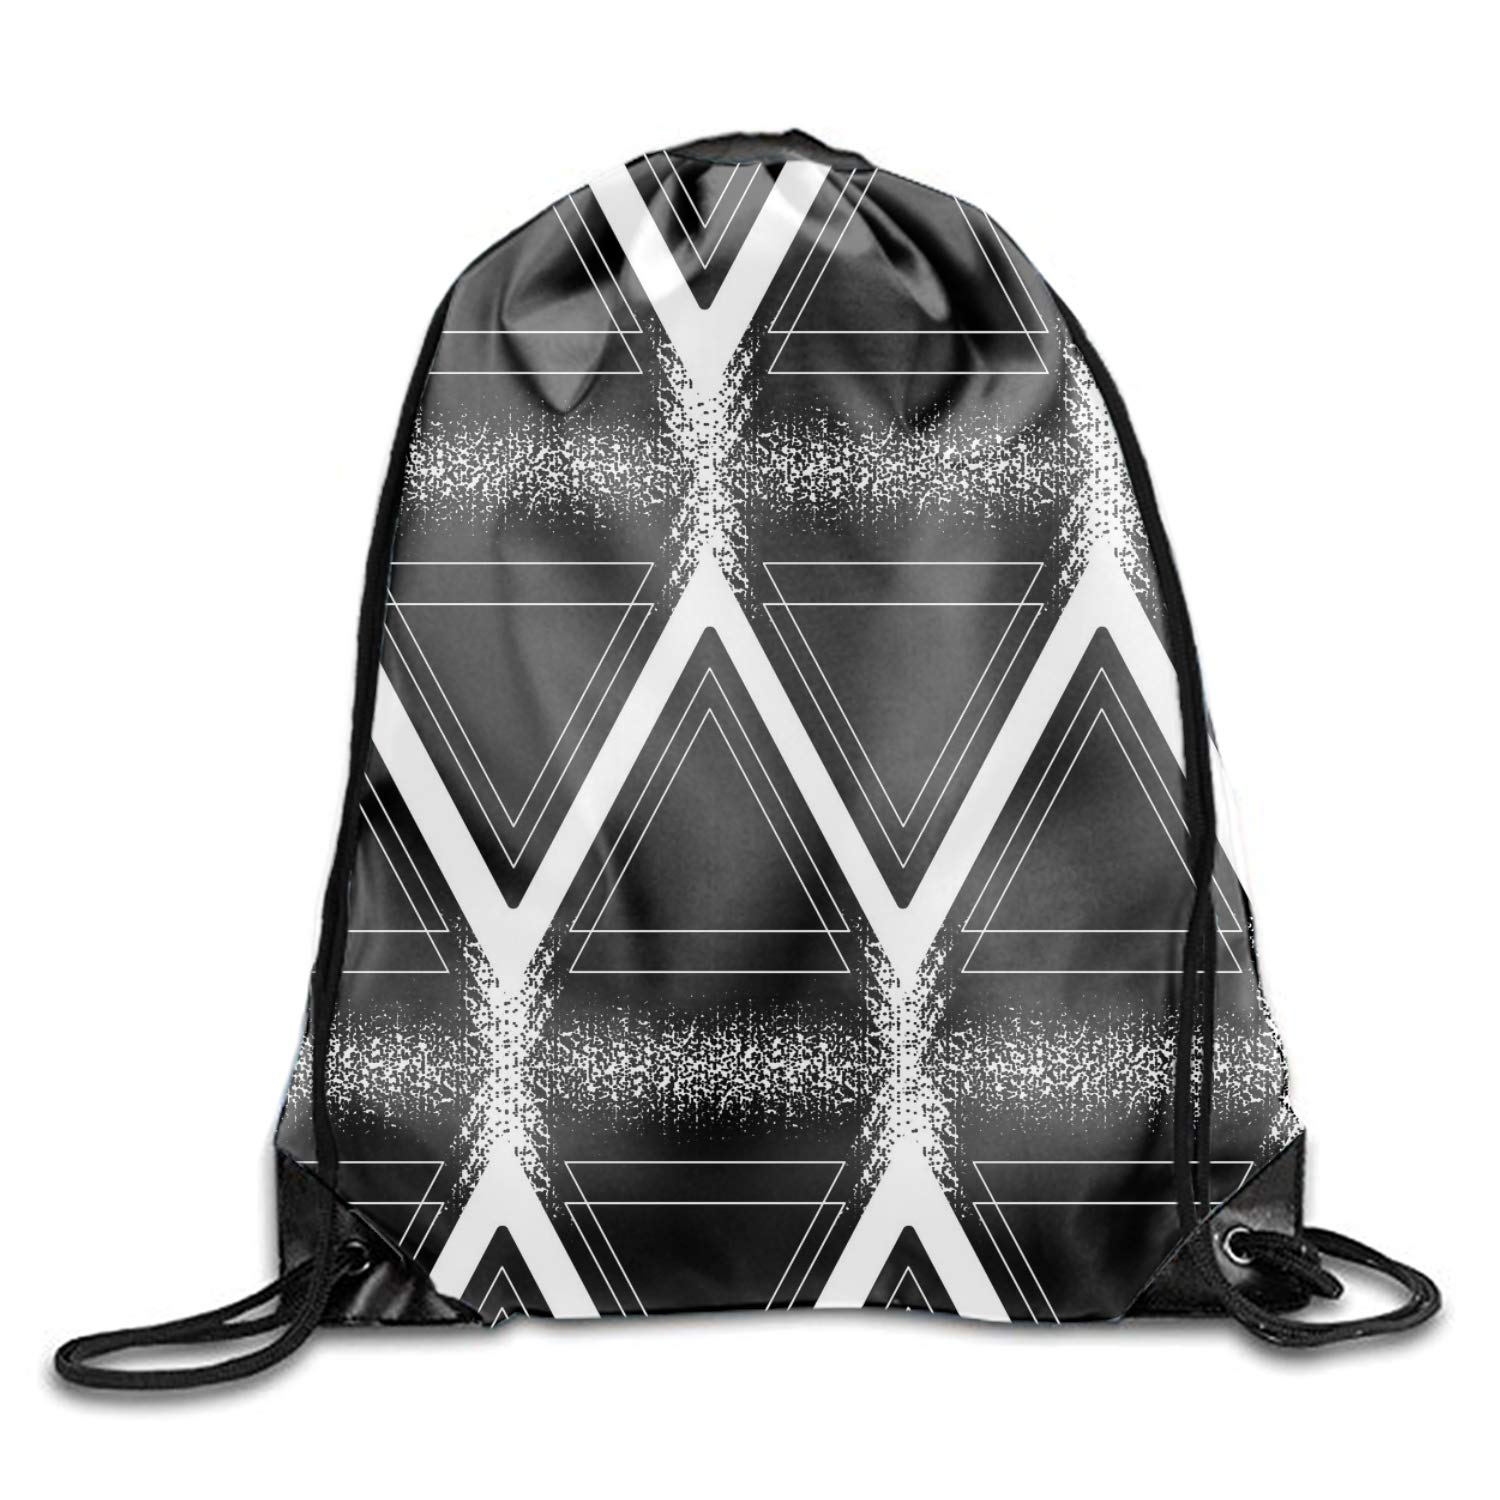 1 Pieces Drawstring Bag Graphic Triangular Sack Pack Cinch Tote Kids Adults Storage Bag for Gym Traveling (Multicolored)